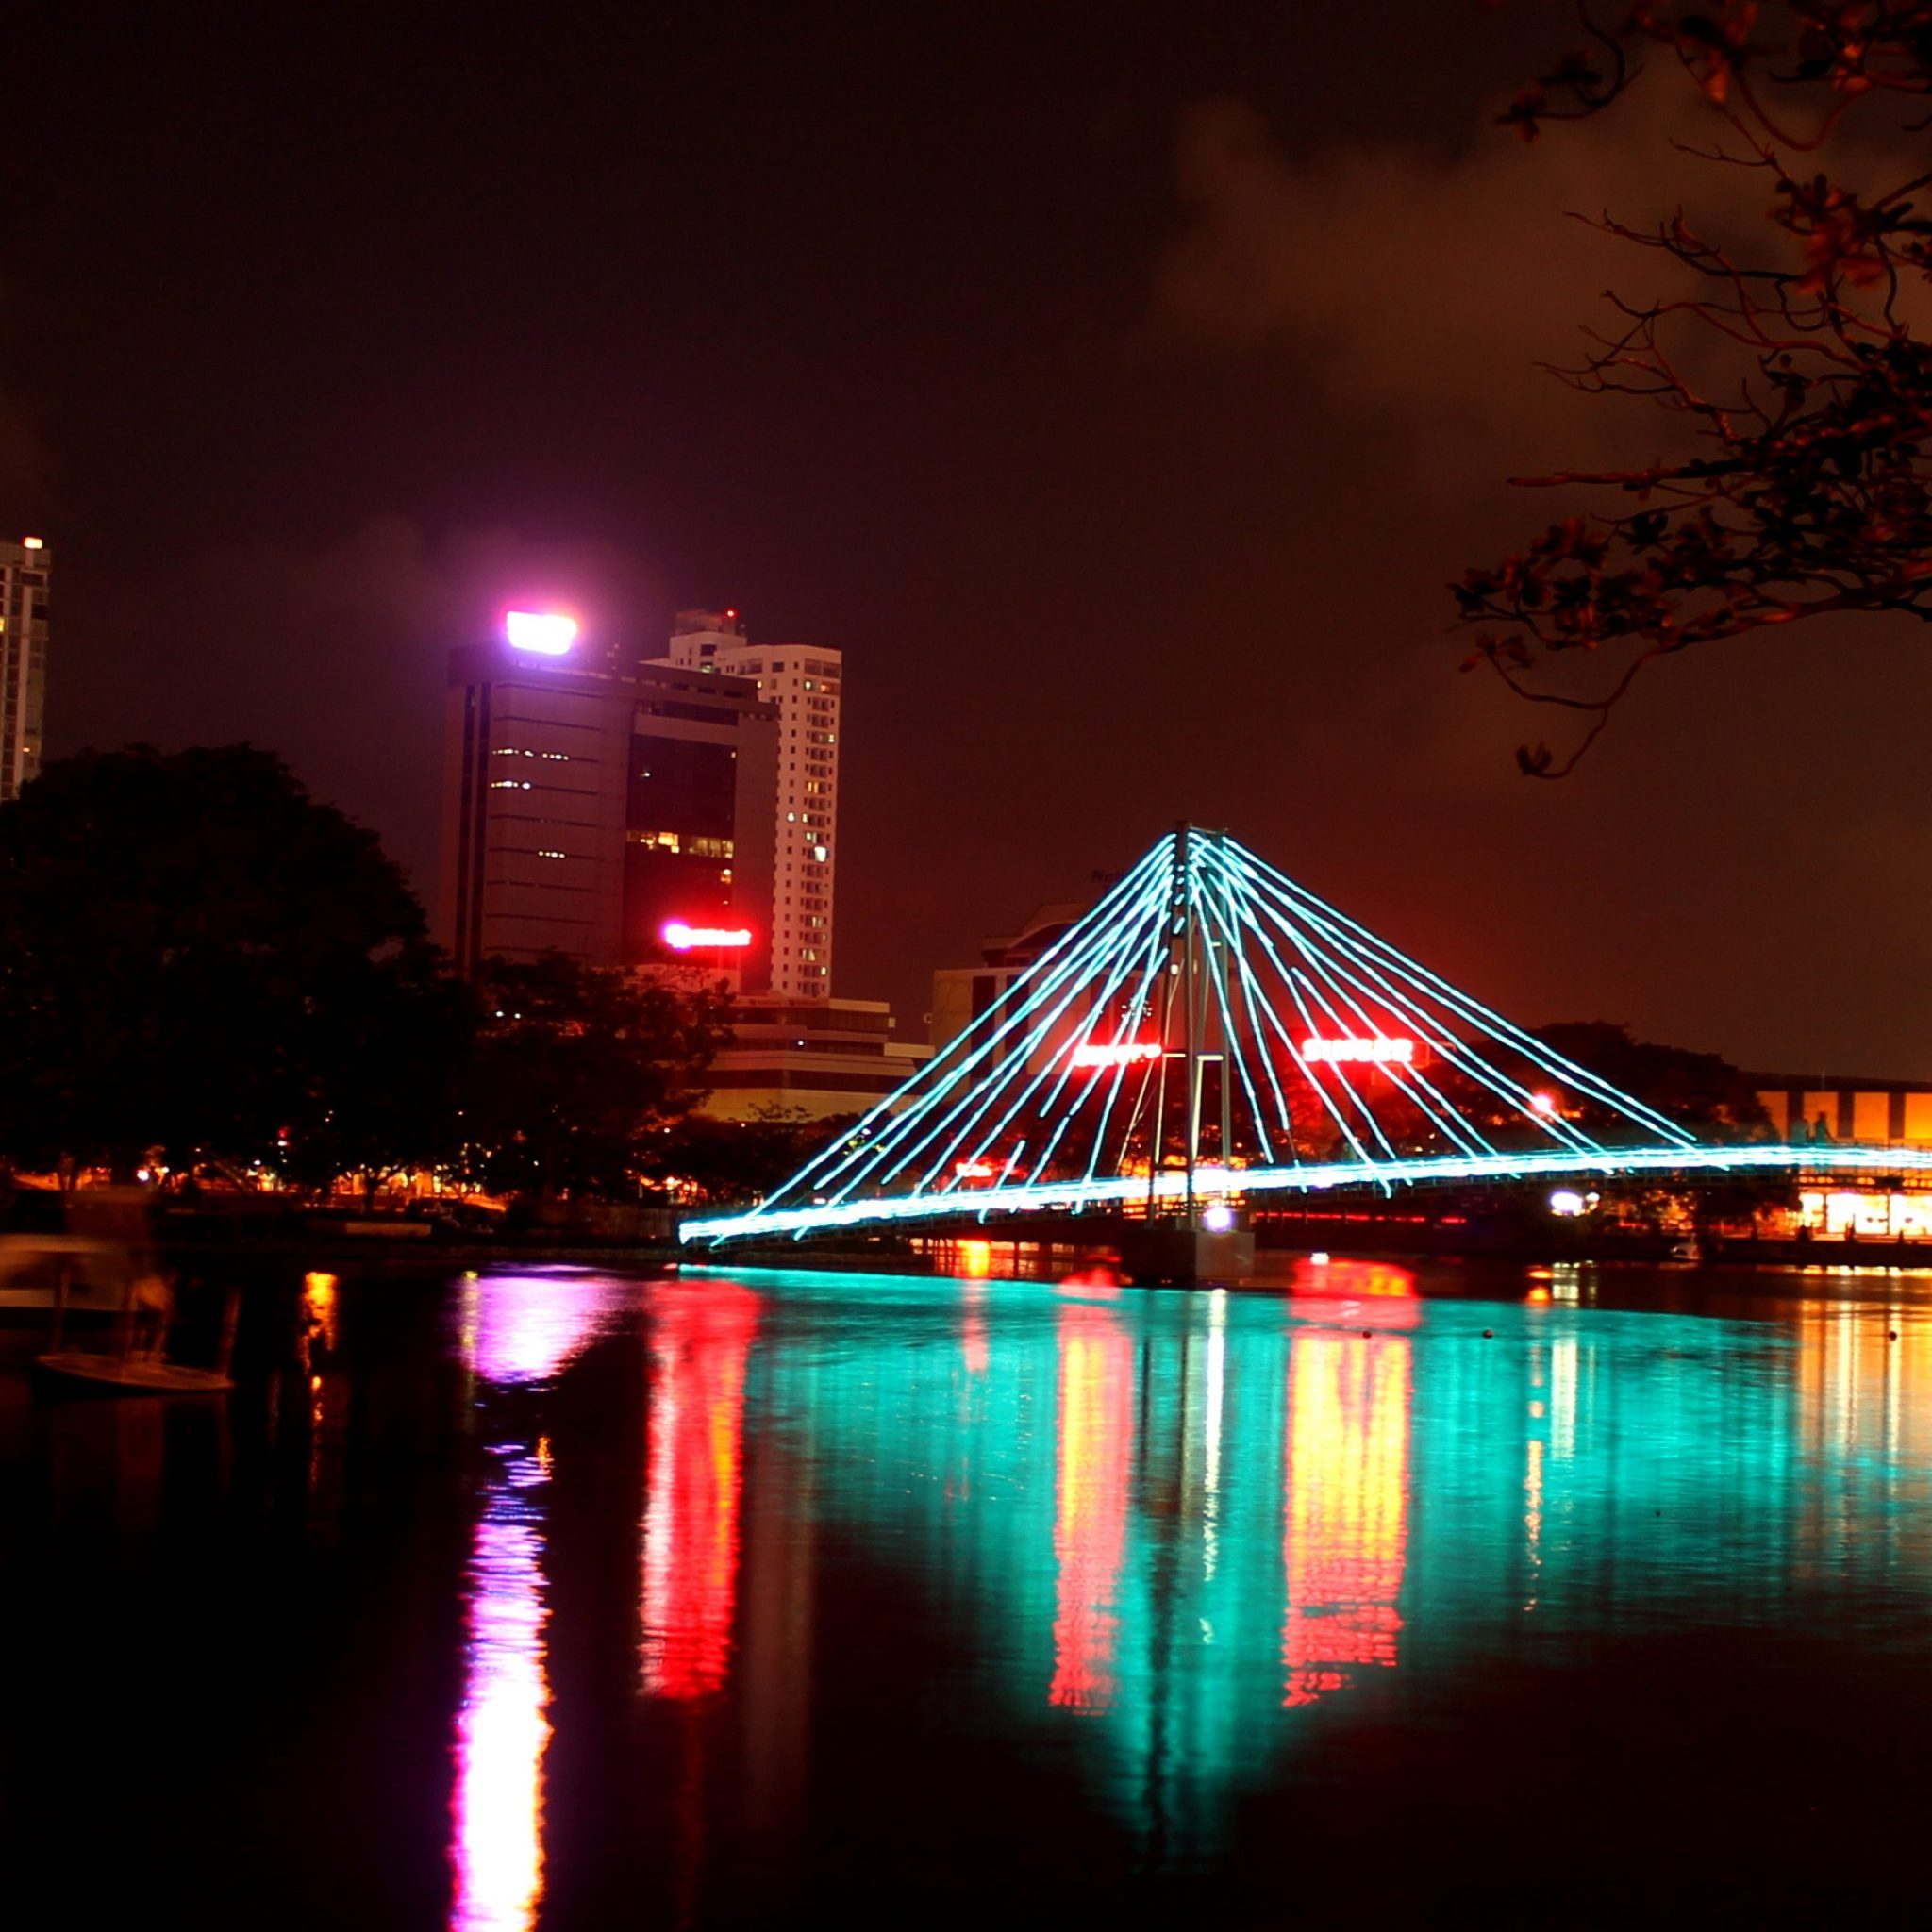 Day 15 - Colombo City Tour